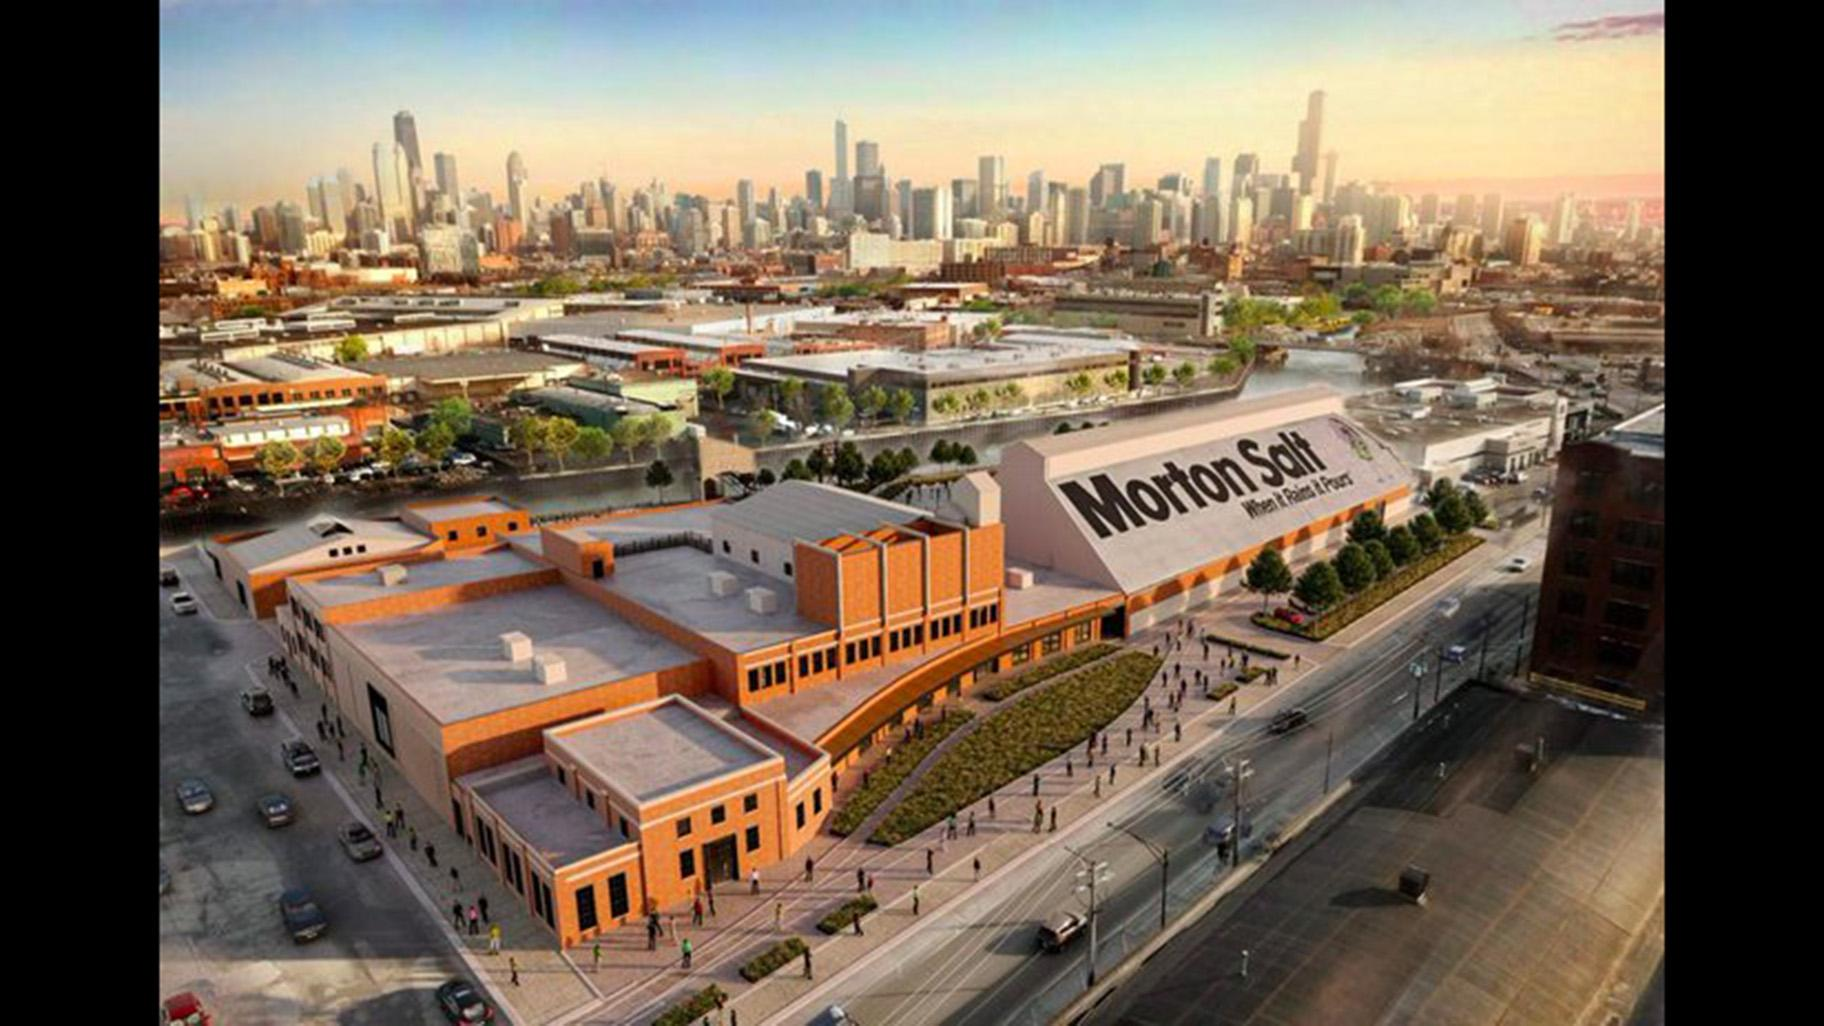 A proposed rendering of a renovated Morton Salt building. (Credit: Chicago Department of Planning and Development)